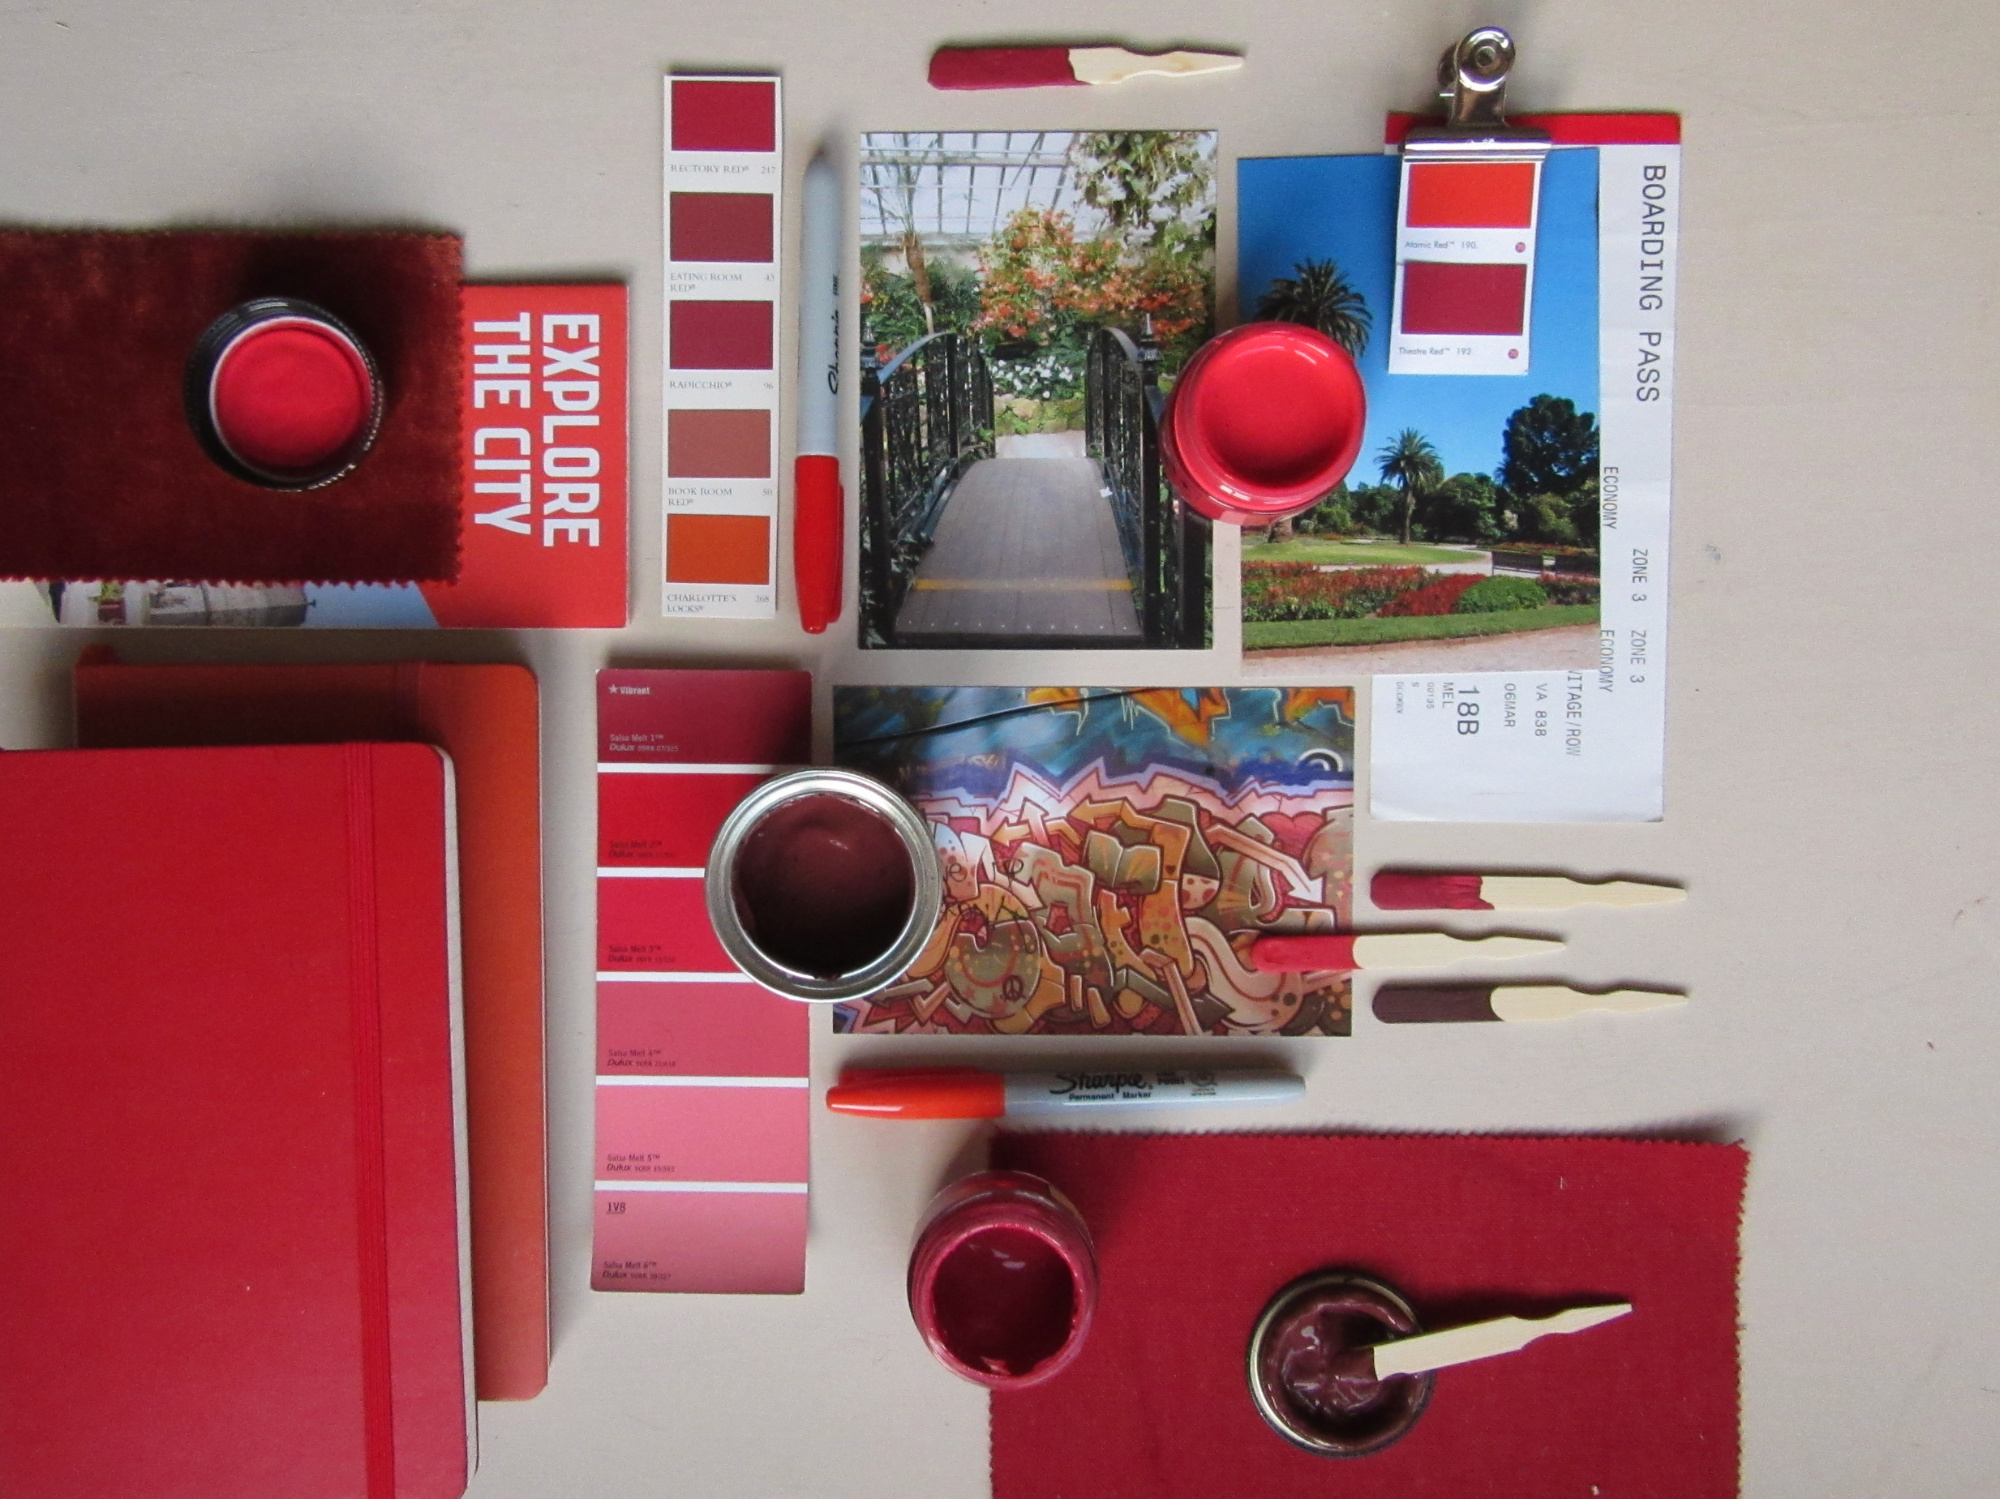 Melbourne reds - Paint pot colours: Little Greene Cape Red; Paint & Paper Library Georgetown; Little Greene Theatre RedMelbourne Reds pop against the bright blue skies of late summer. From Luna Park in St Kilda to the laneways full of street art, especially Hosier Lane.